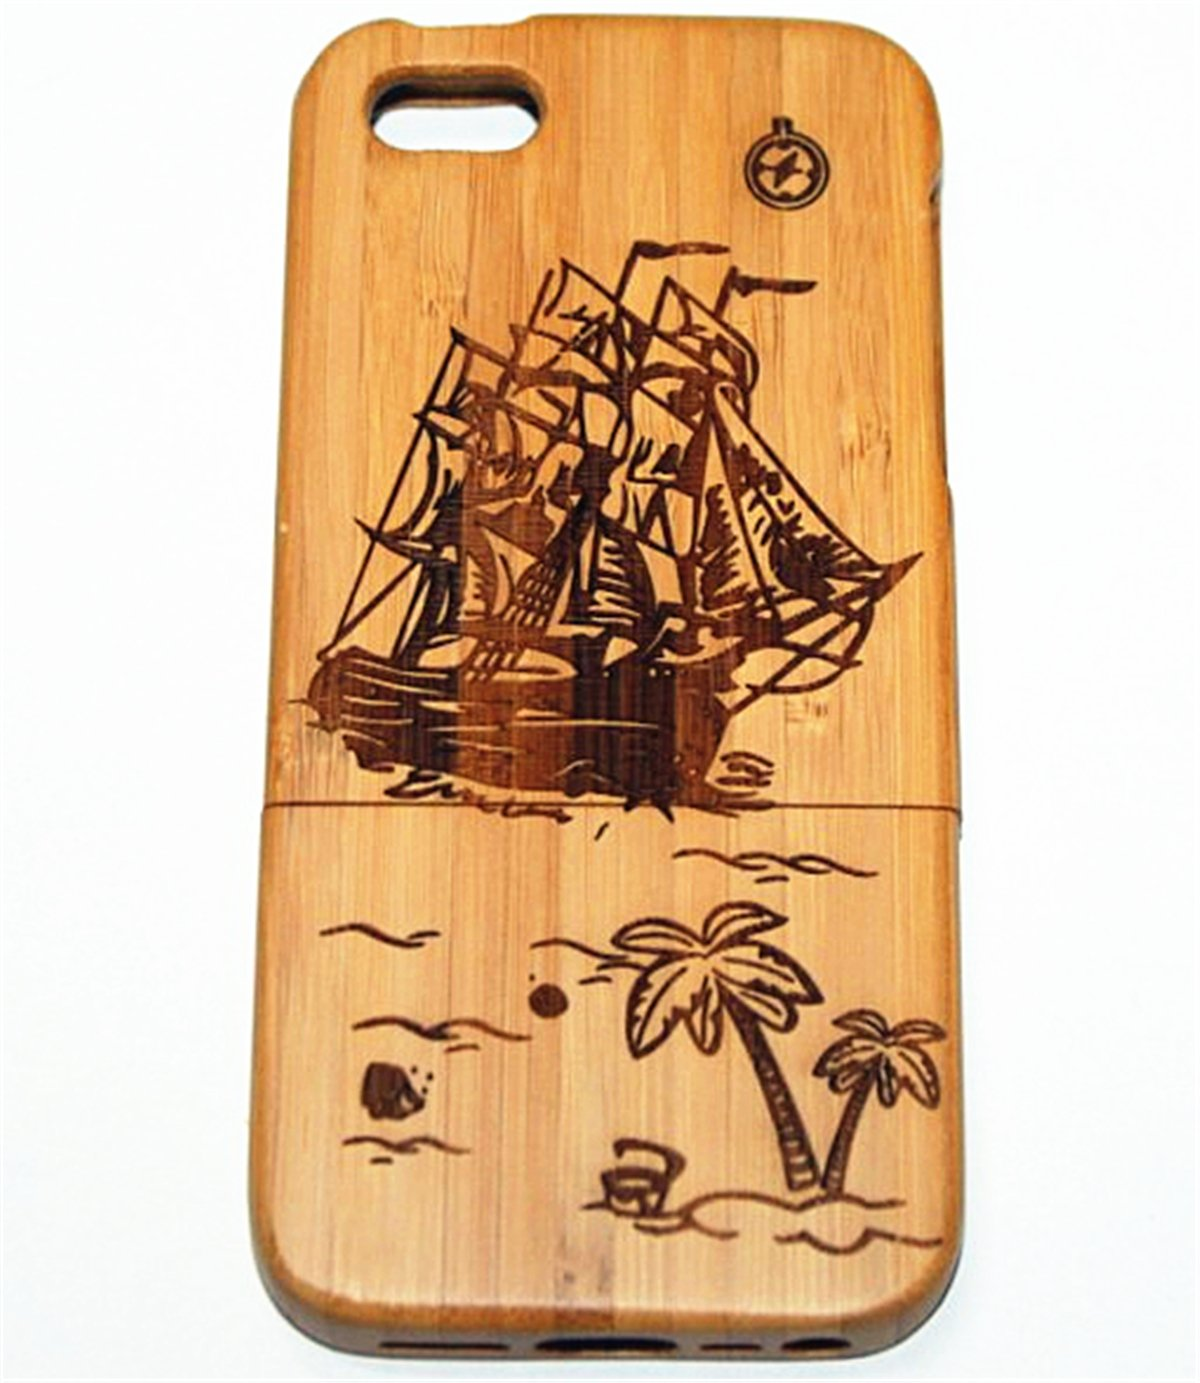 iPhone 4S Case, Firefish Wood Life Natural Handmade Carved Wooden Hard Case Cover Protective Shell For iPhone 4S ( With A Stylus) -Sailing